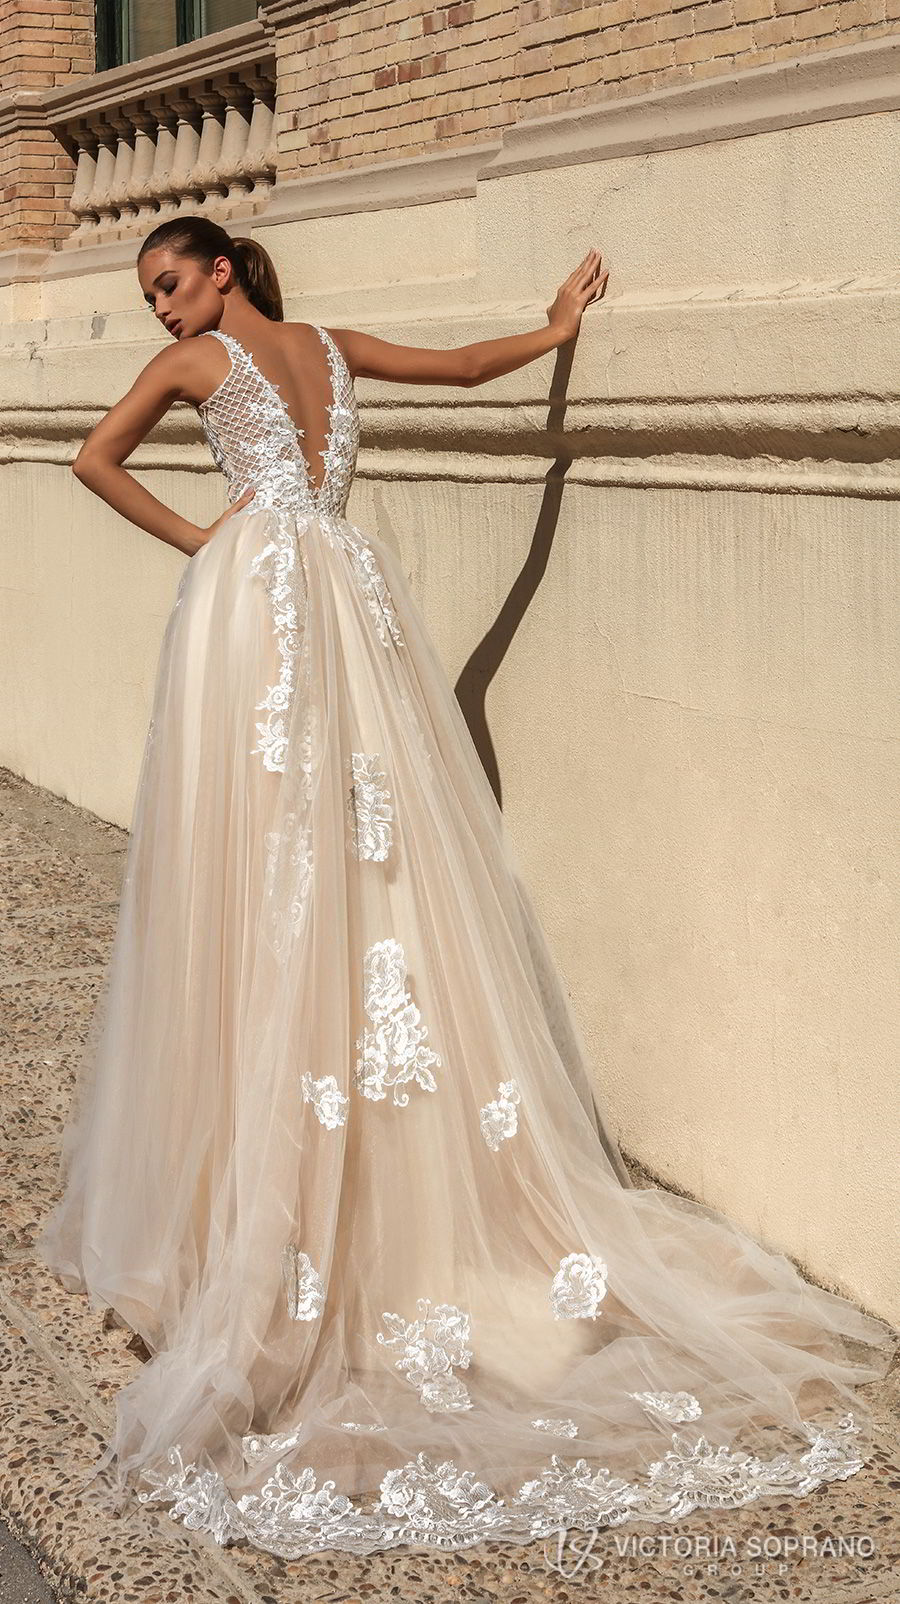 victoria soprano 2018 bridal sleeveless deep plunging v neck heavily embellished bodice romantic sexy champagne color a line wedding dress open v back chapel train (bella) bv